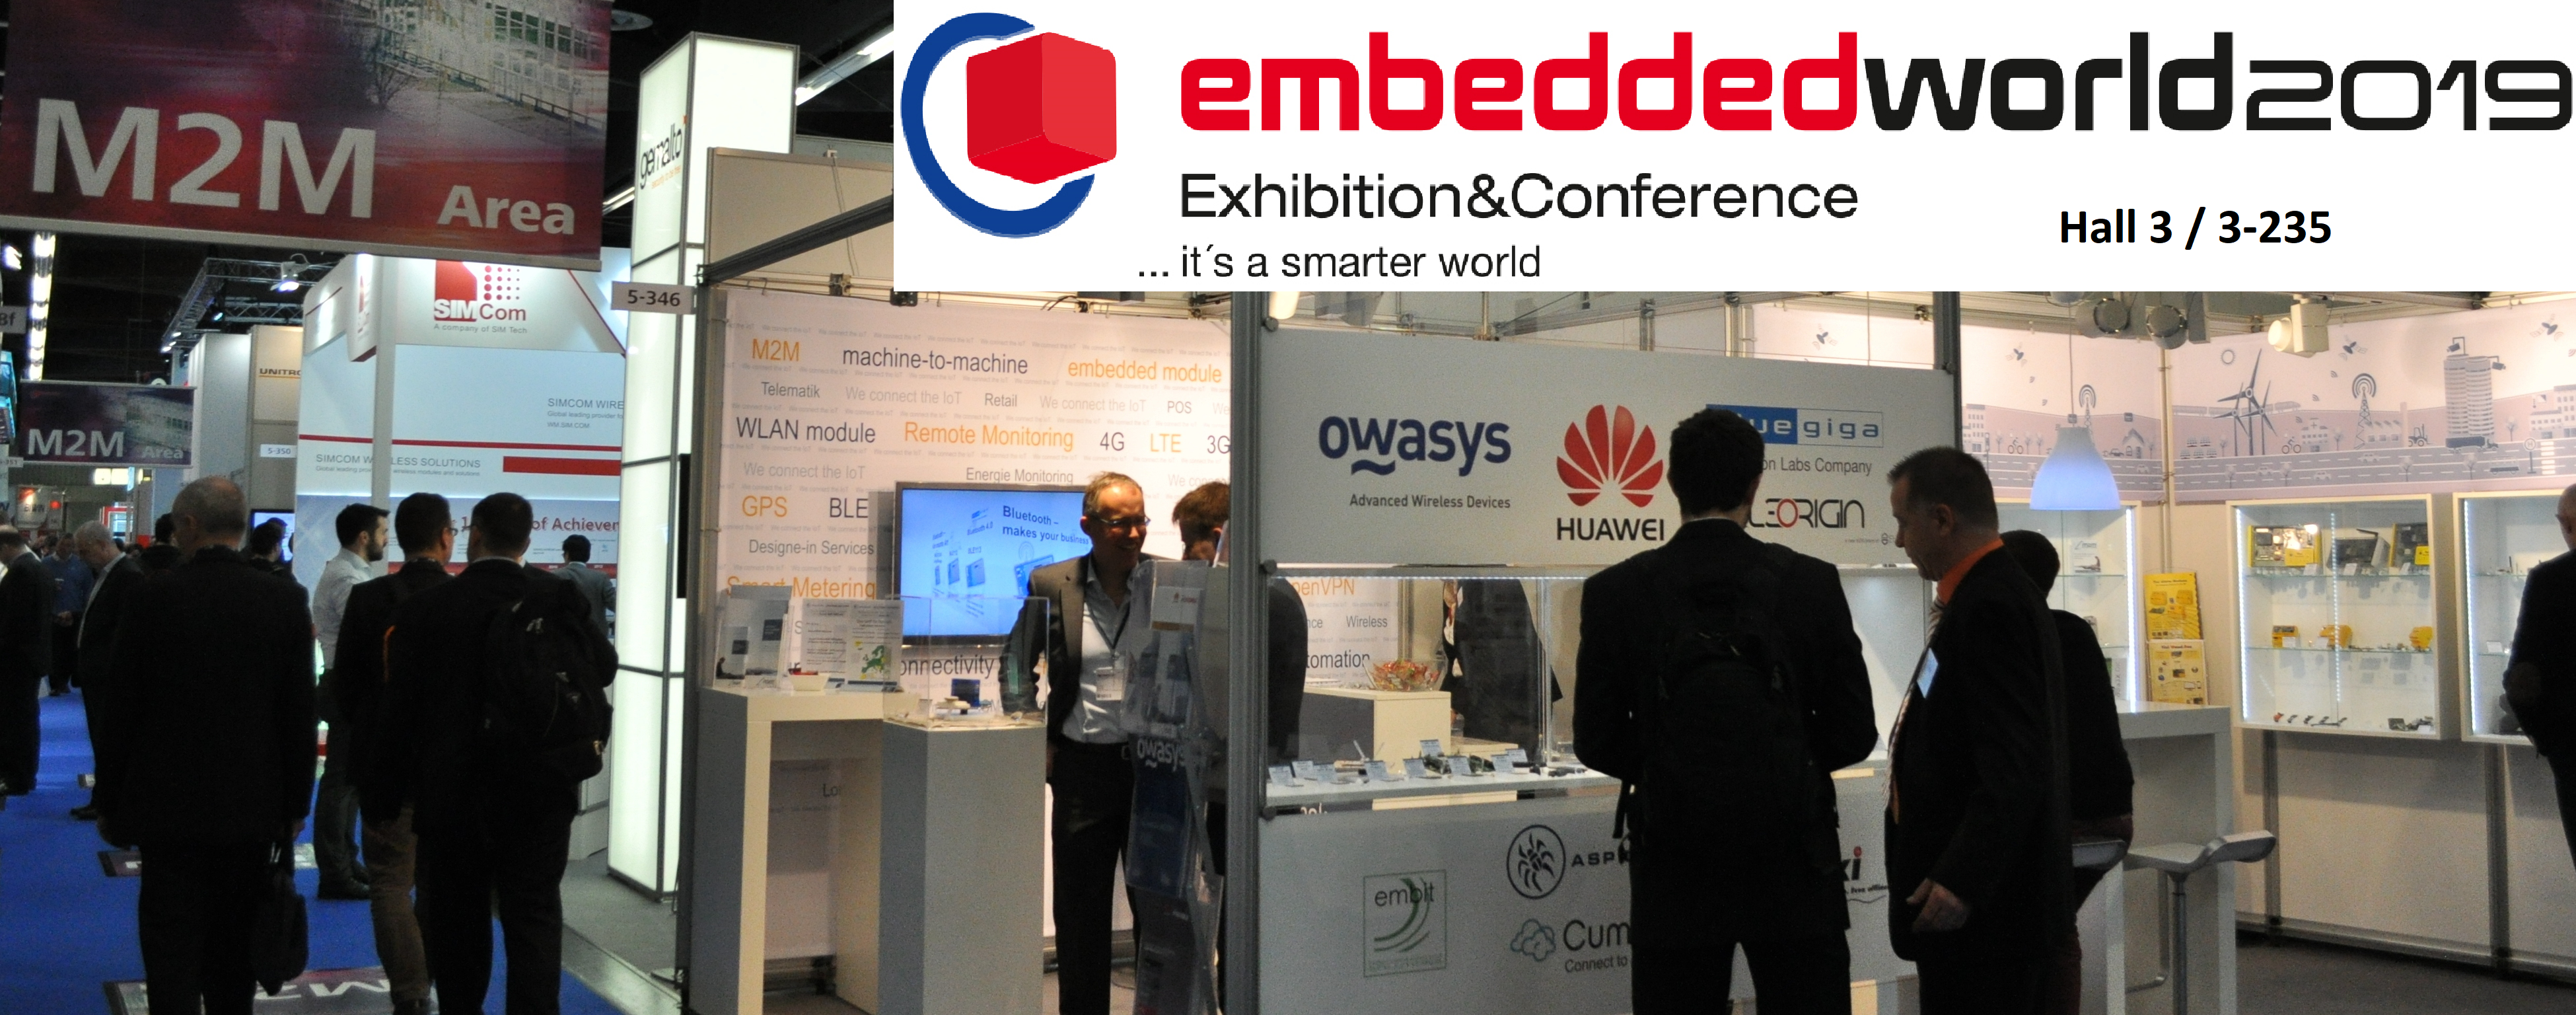 Owasys will be at Embedded World 2019